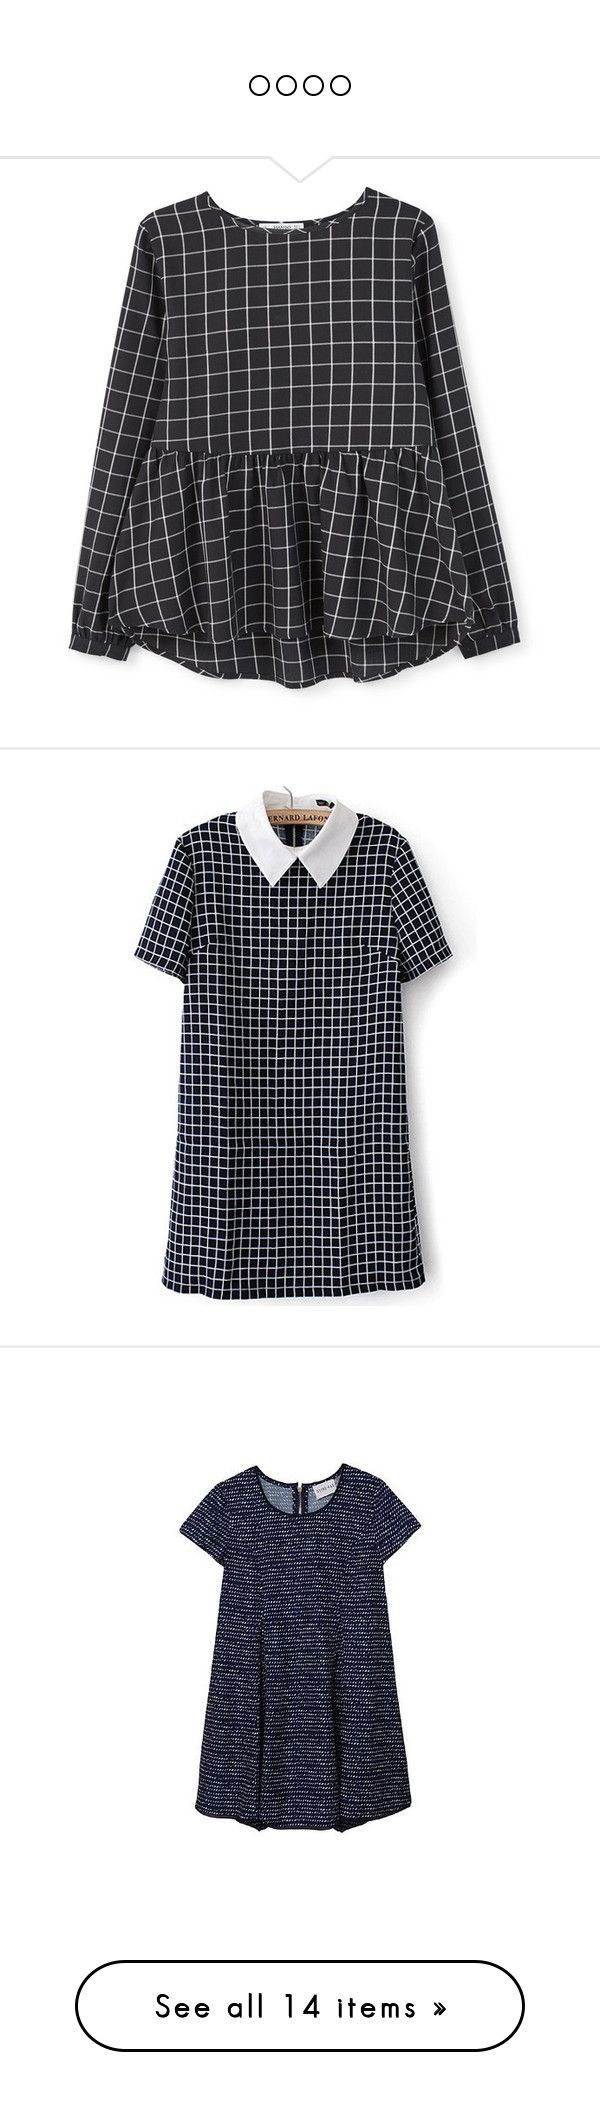 """""""oooo"""" by vani-624 ❤ liked on Polyvore featuring tops, blouses, shirts, blusas, camisetas, longsleeve shirt, long sleeve peplum shirt, round top, checkered shirt and shirts & blouses"""